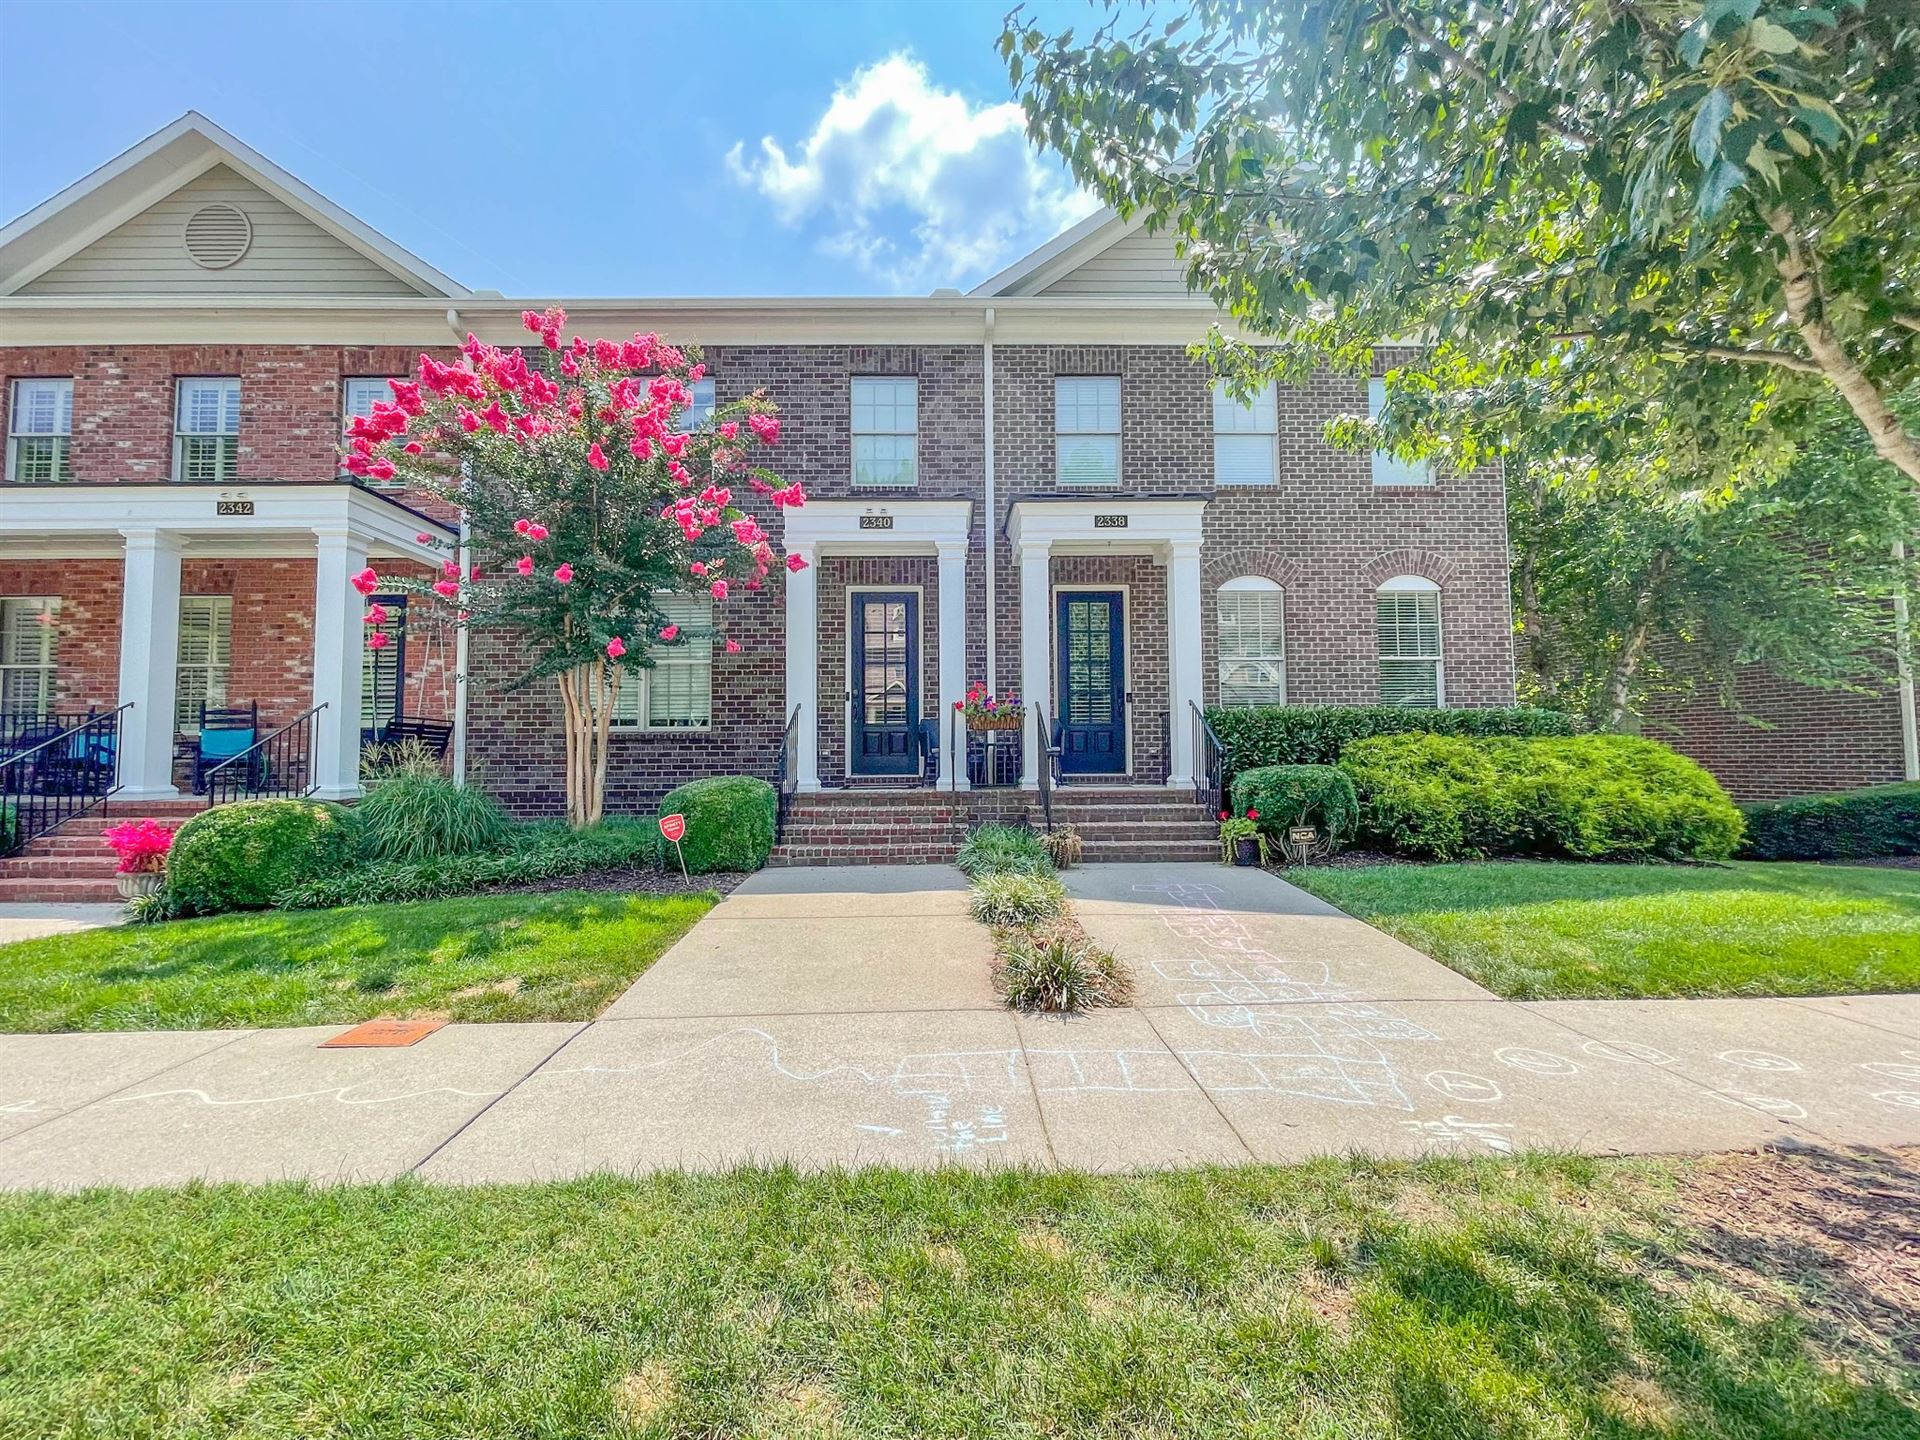 Photo of 2340 Clare Park Dr, Franklin, TN 37069 (MLS # 2276405)